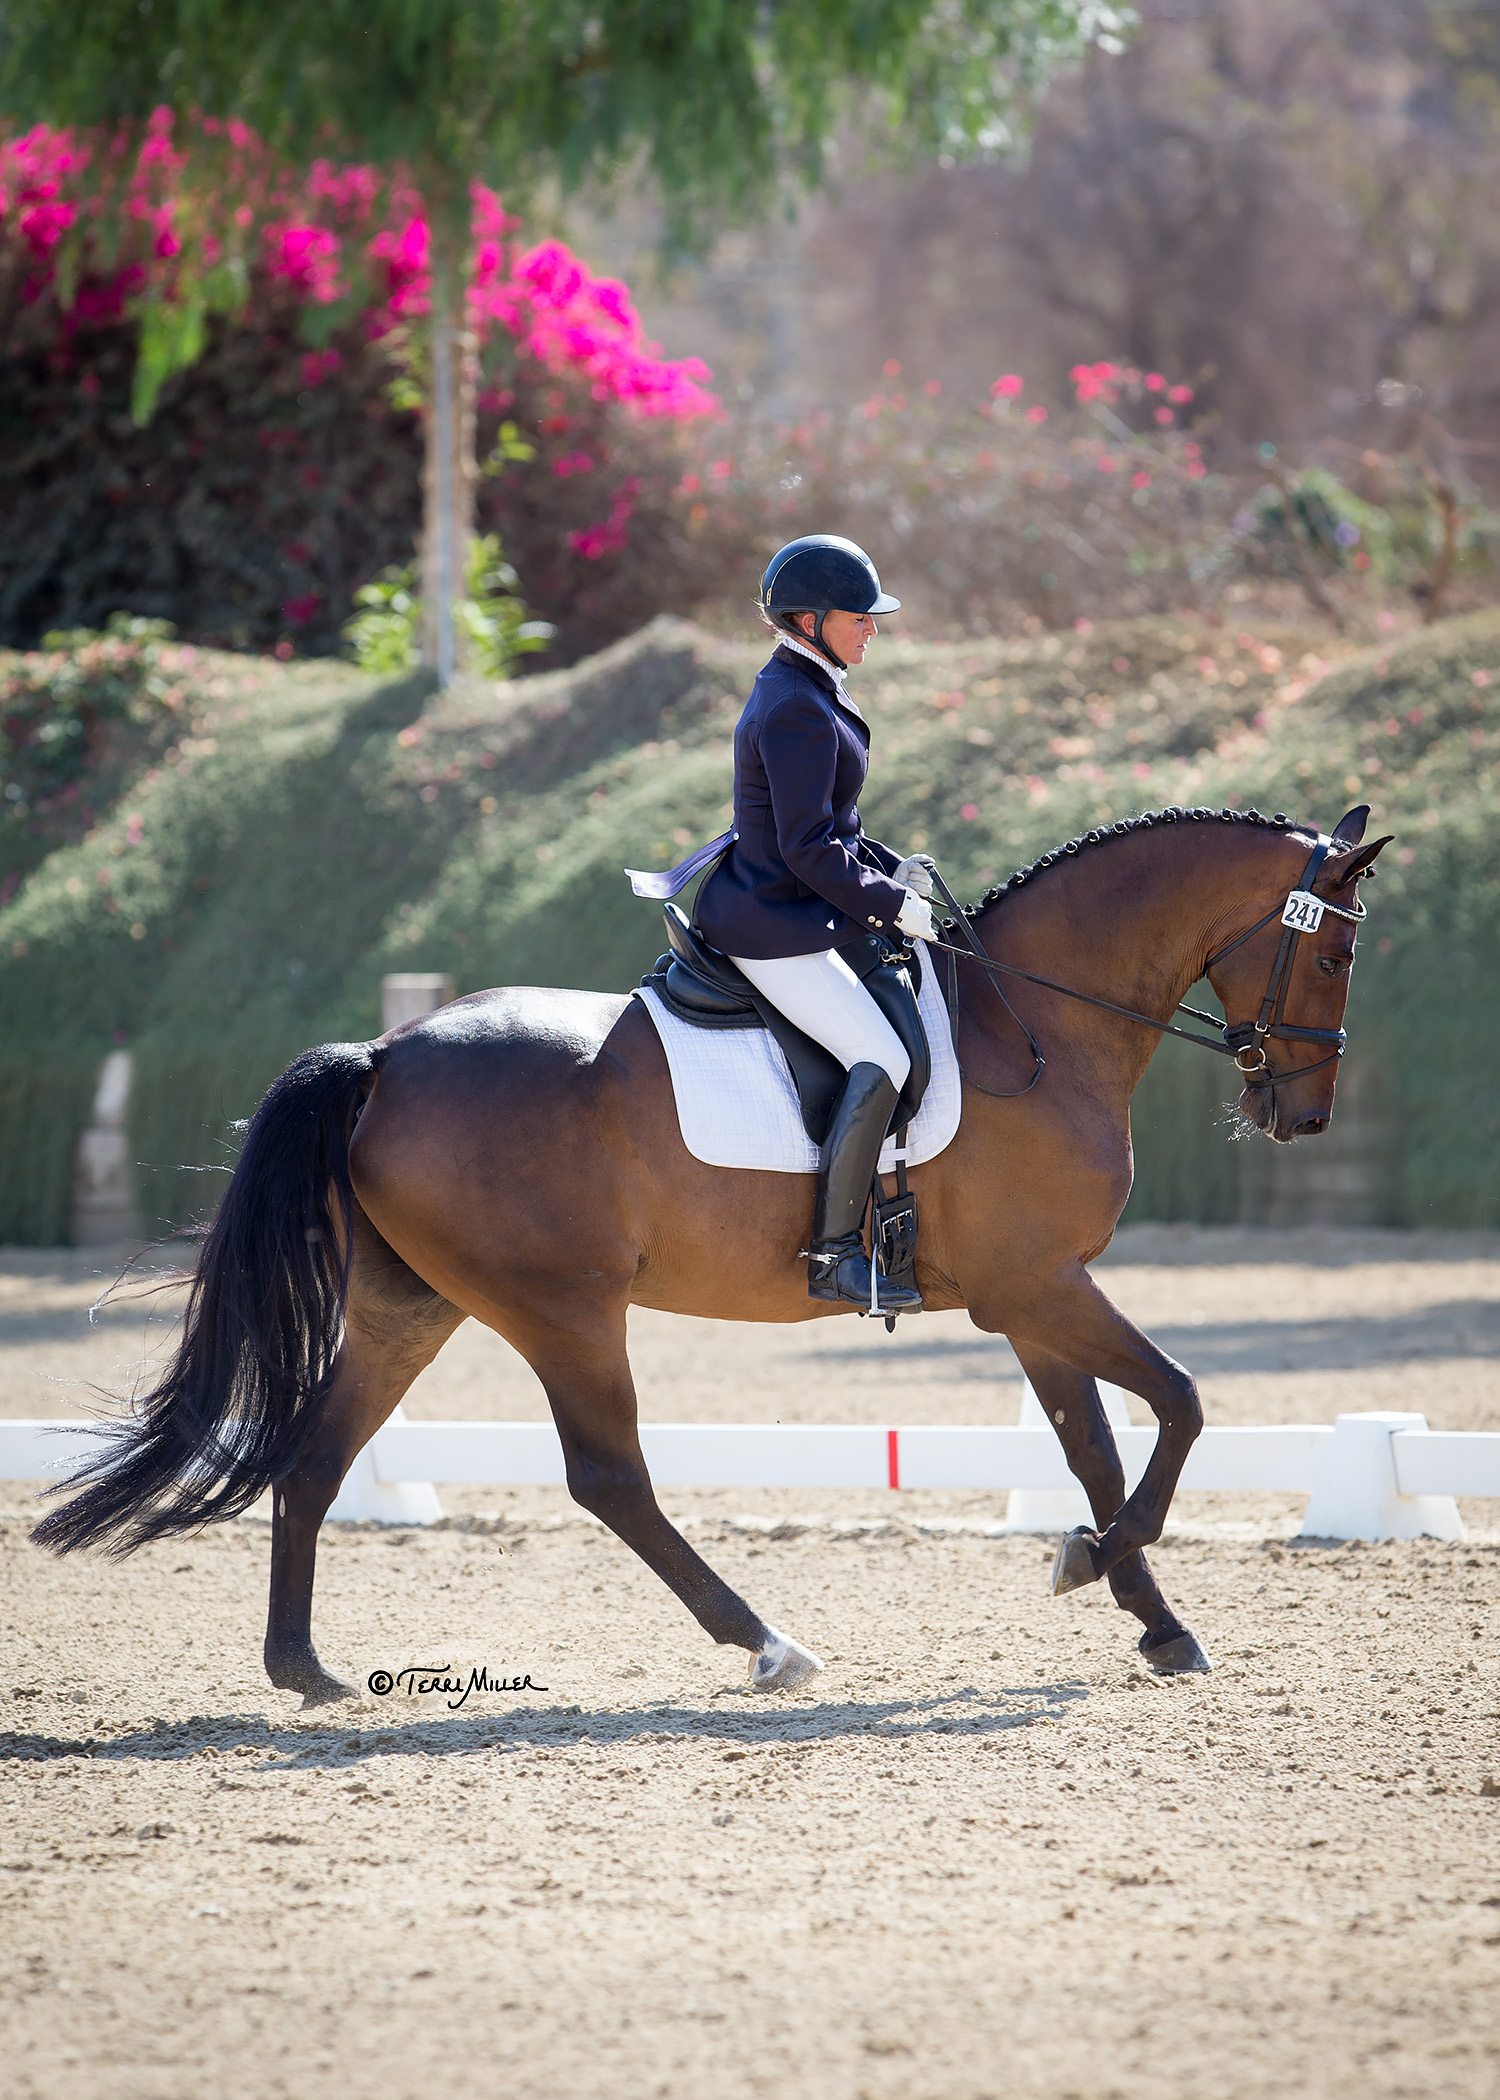 Karen and Theo for you - Championships 2016